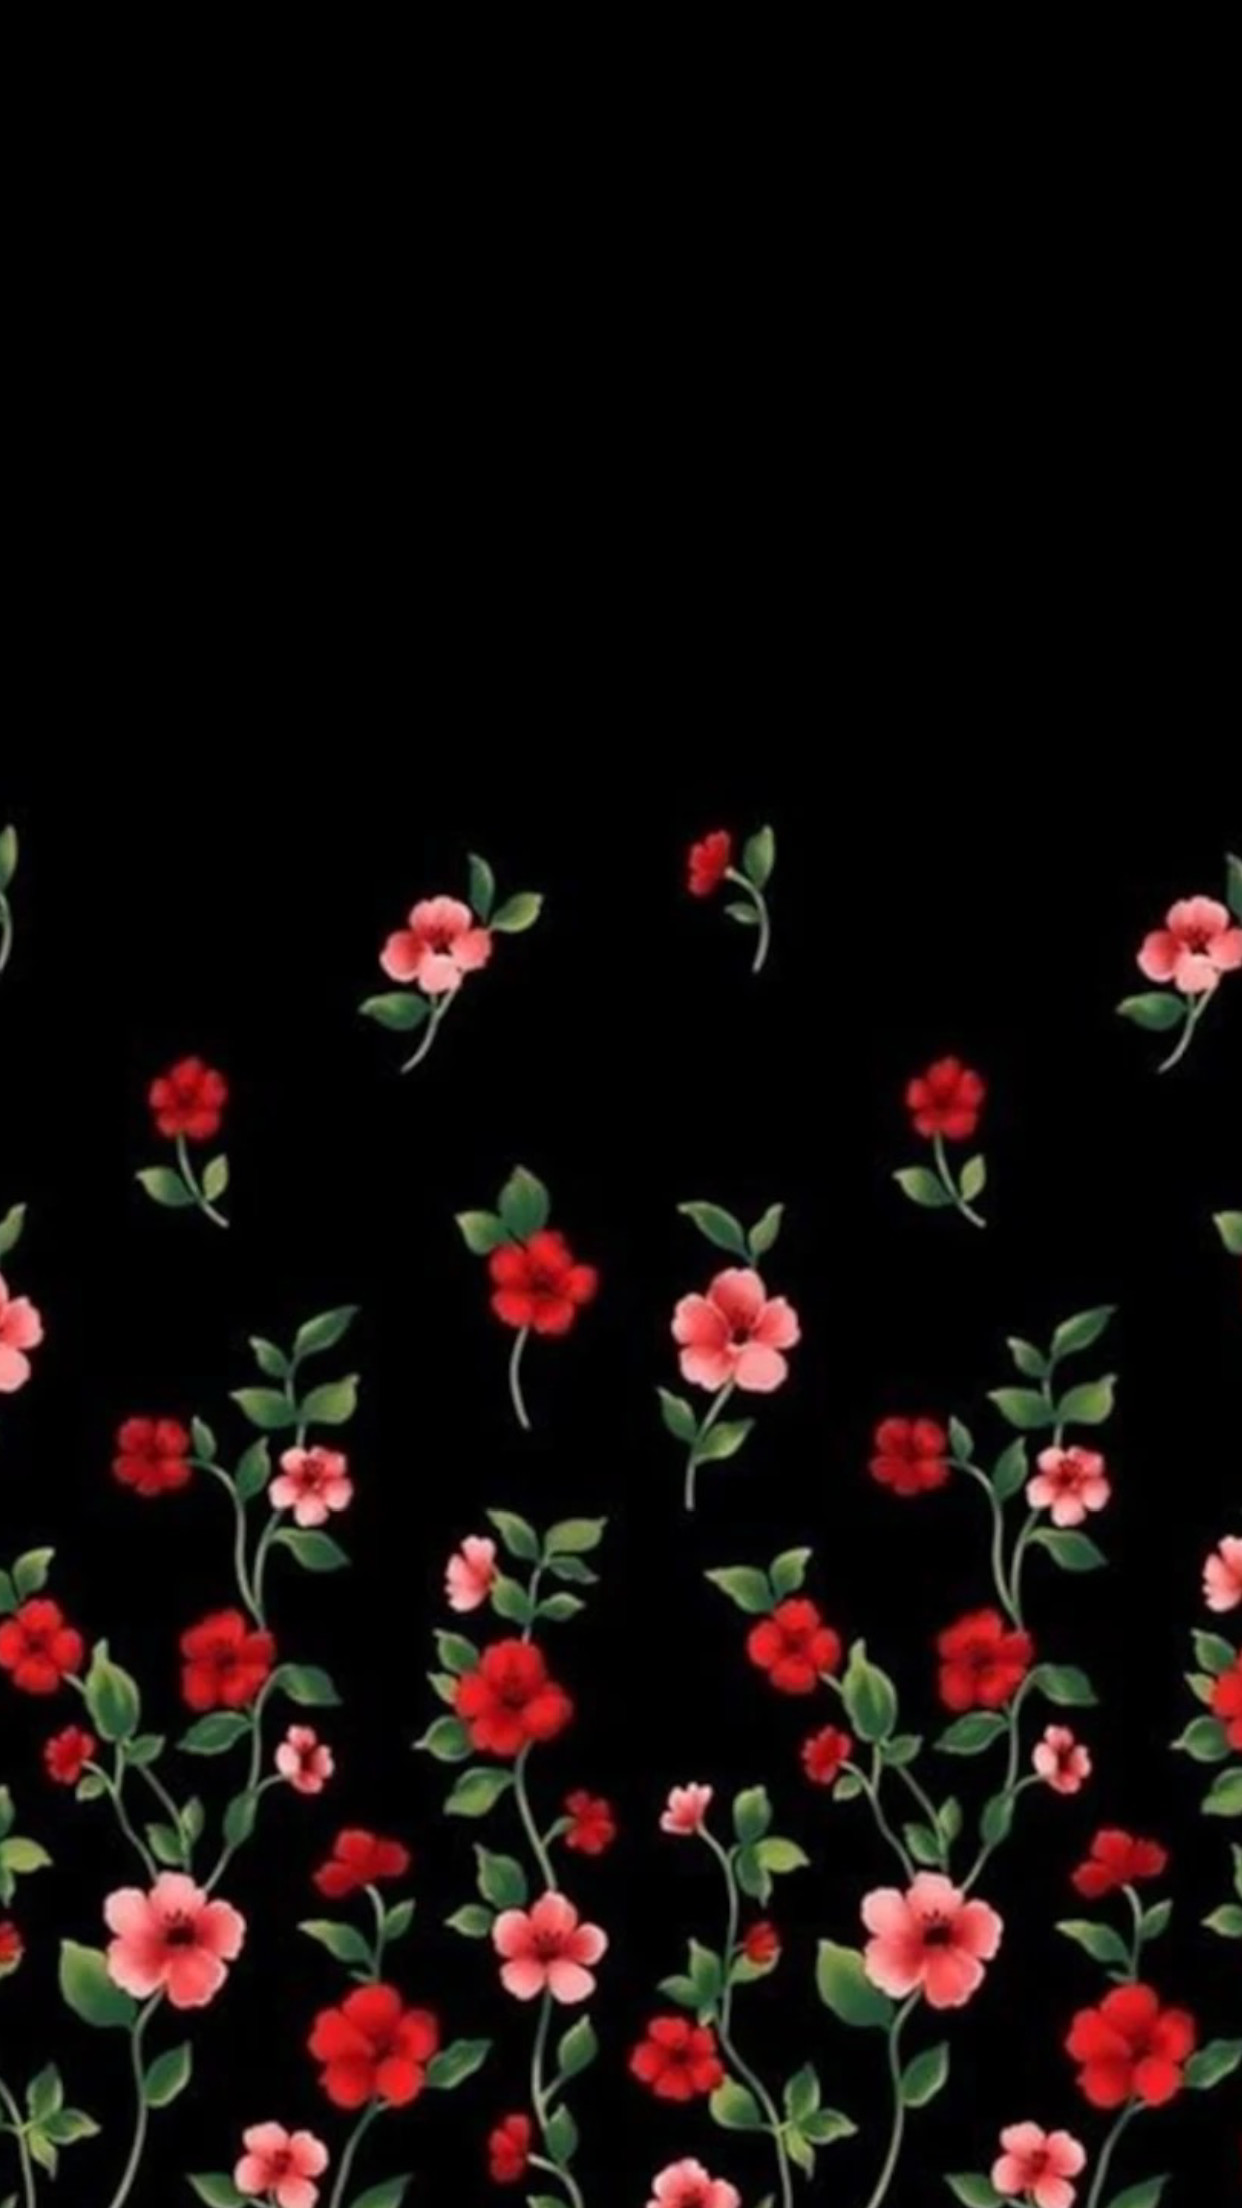 7 Pretty Floral Iphone 8 8 Plus Hd Wallpapers Red Flower Wallpaper Iphone 297587 Hd Wallpaper Backgrounds Download